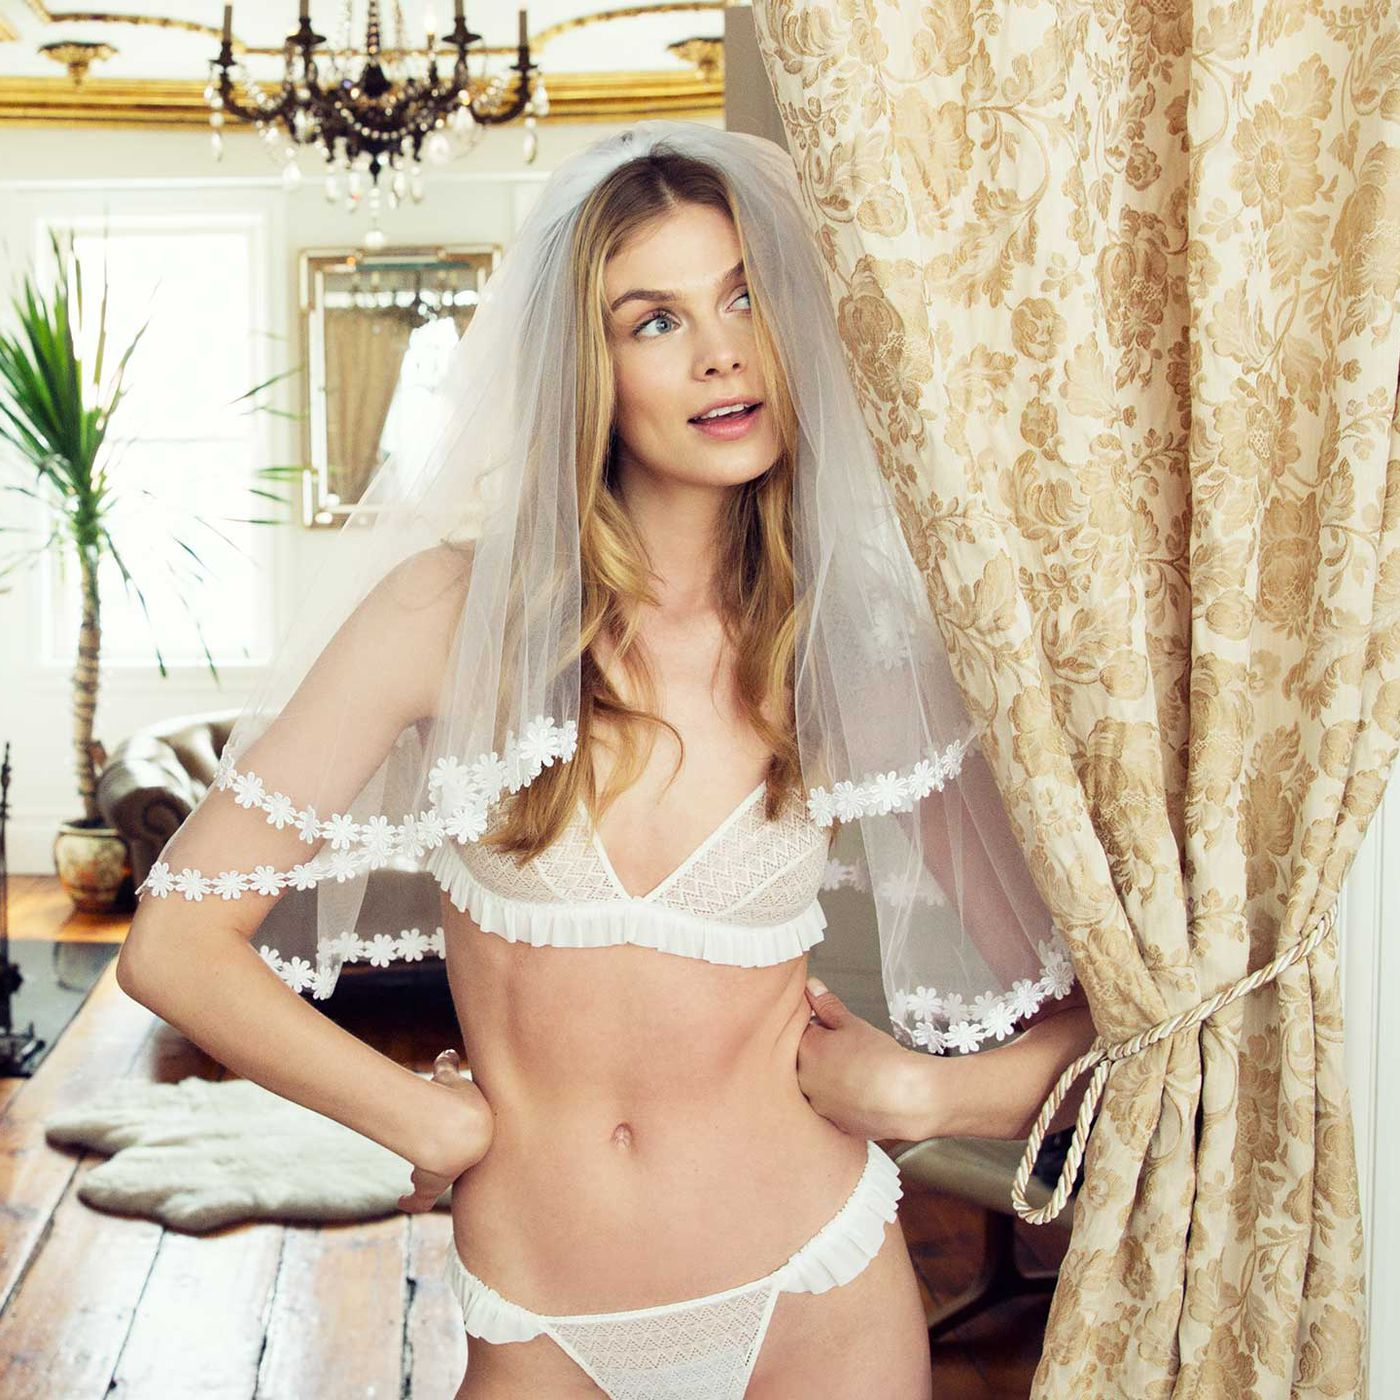 e6786c429 What to Wear Under Your Wedding Dress - Racked